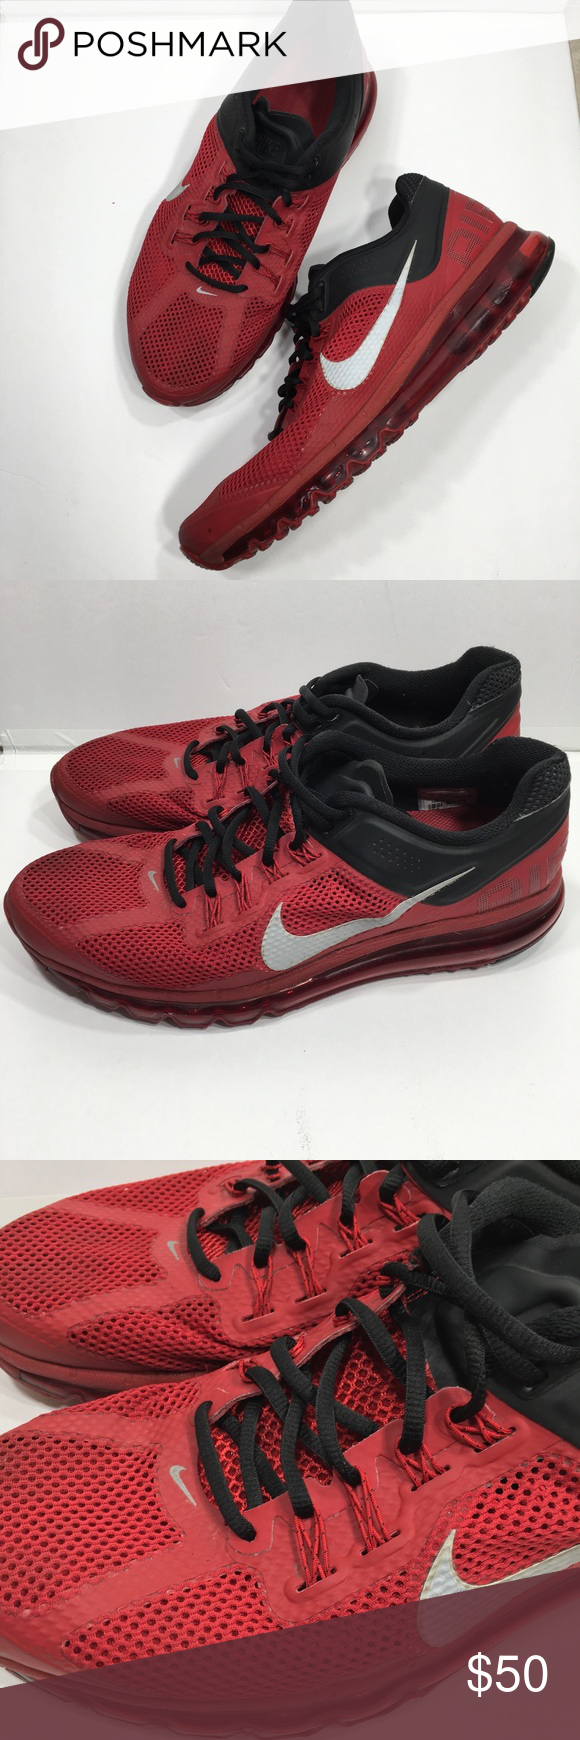 the best attitude 9b0e8 fa17a Nike Men s Air Max 2013 varsity red Men s size 13 Gently worn Minimal signs  of wear The Air max letters on back have some signs of wear (see photos)  Overall ...